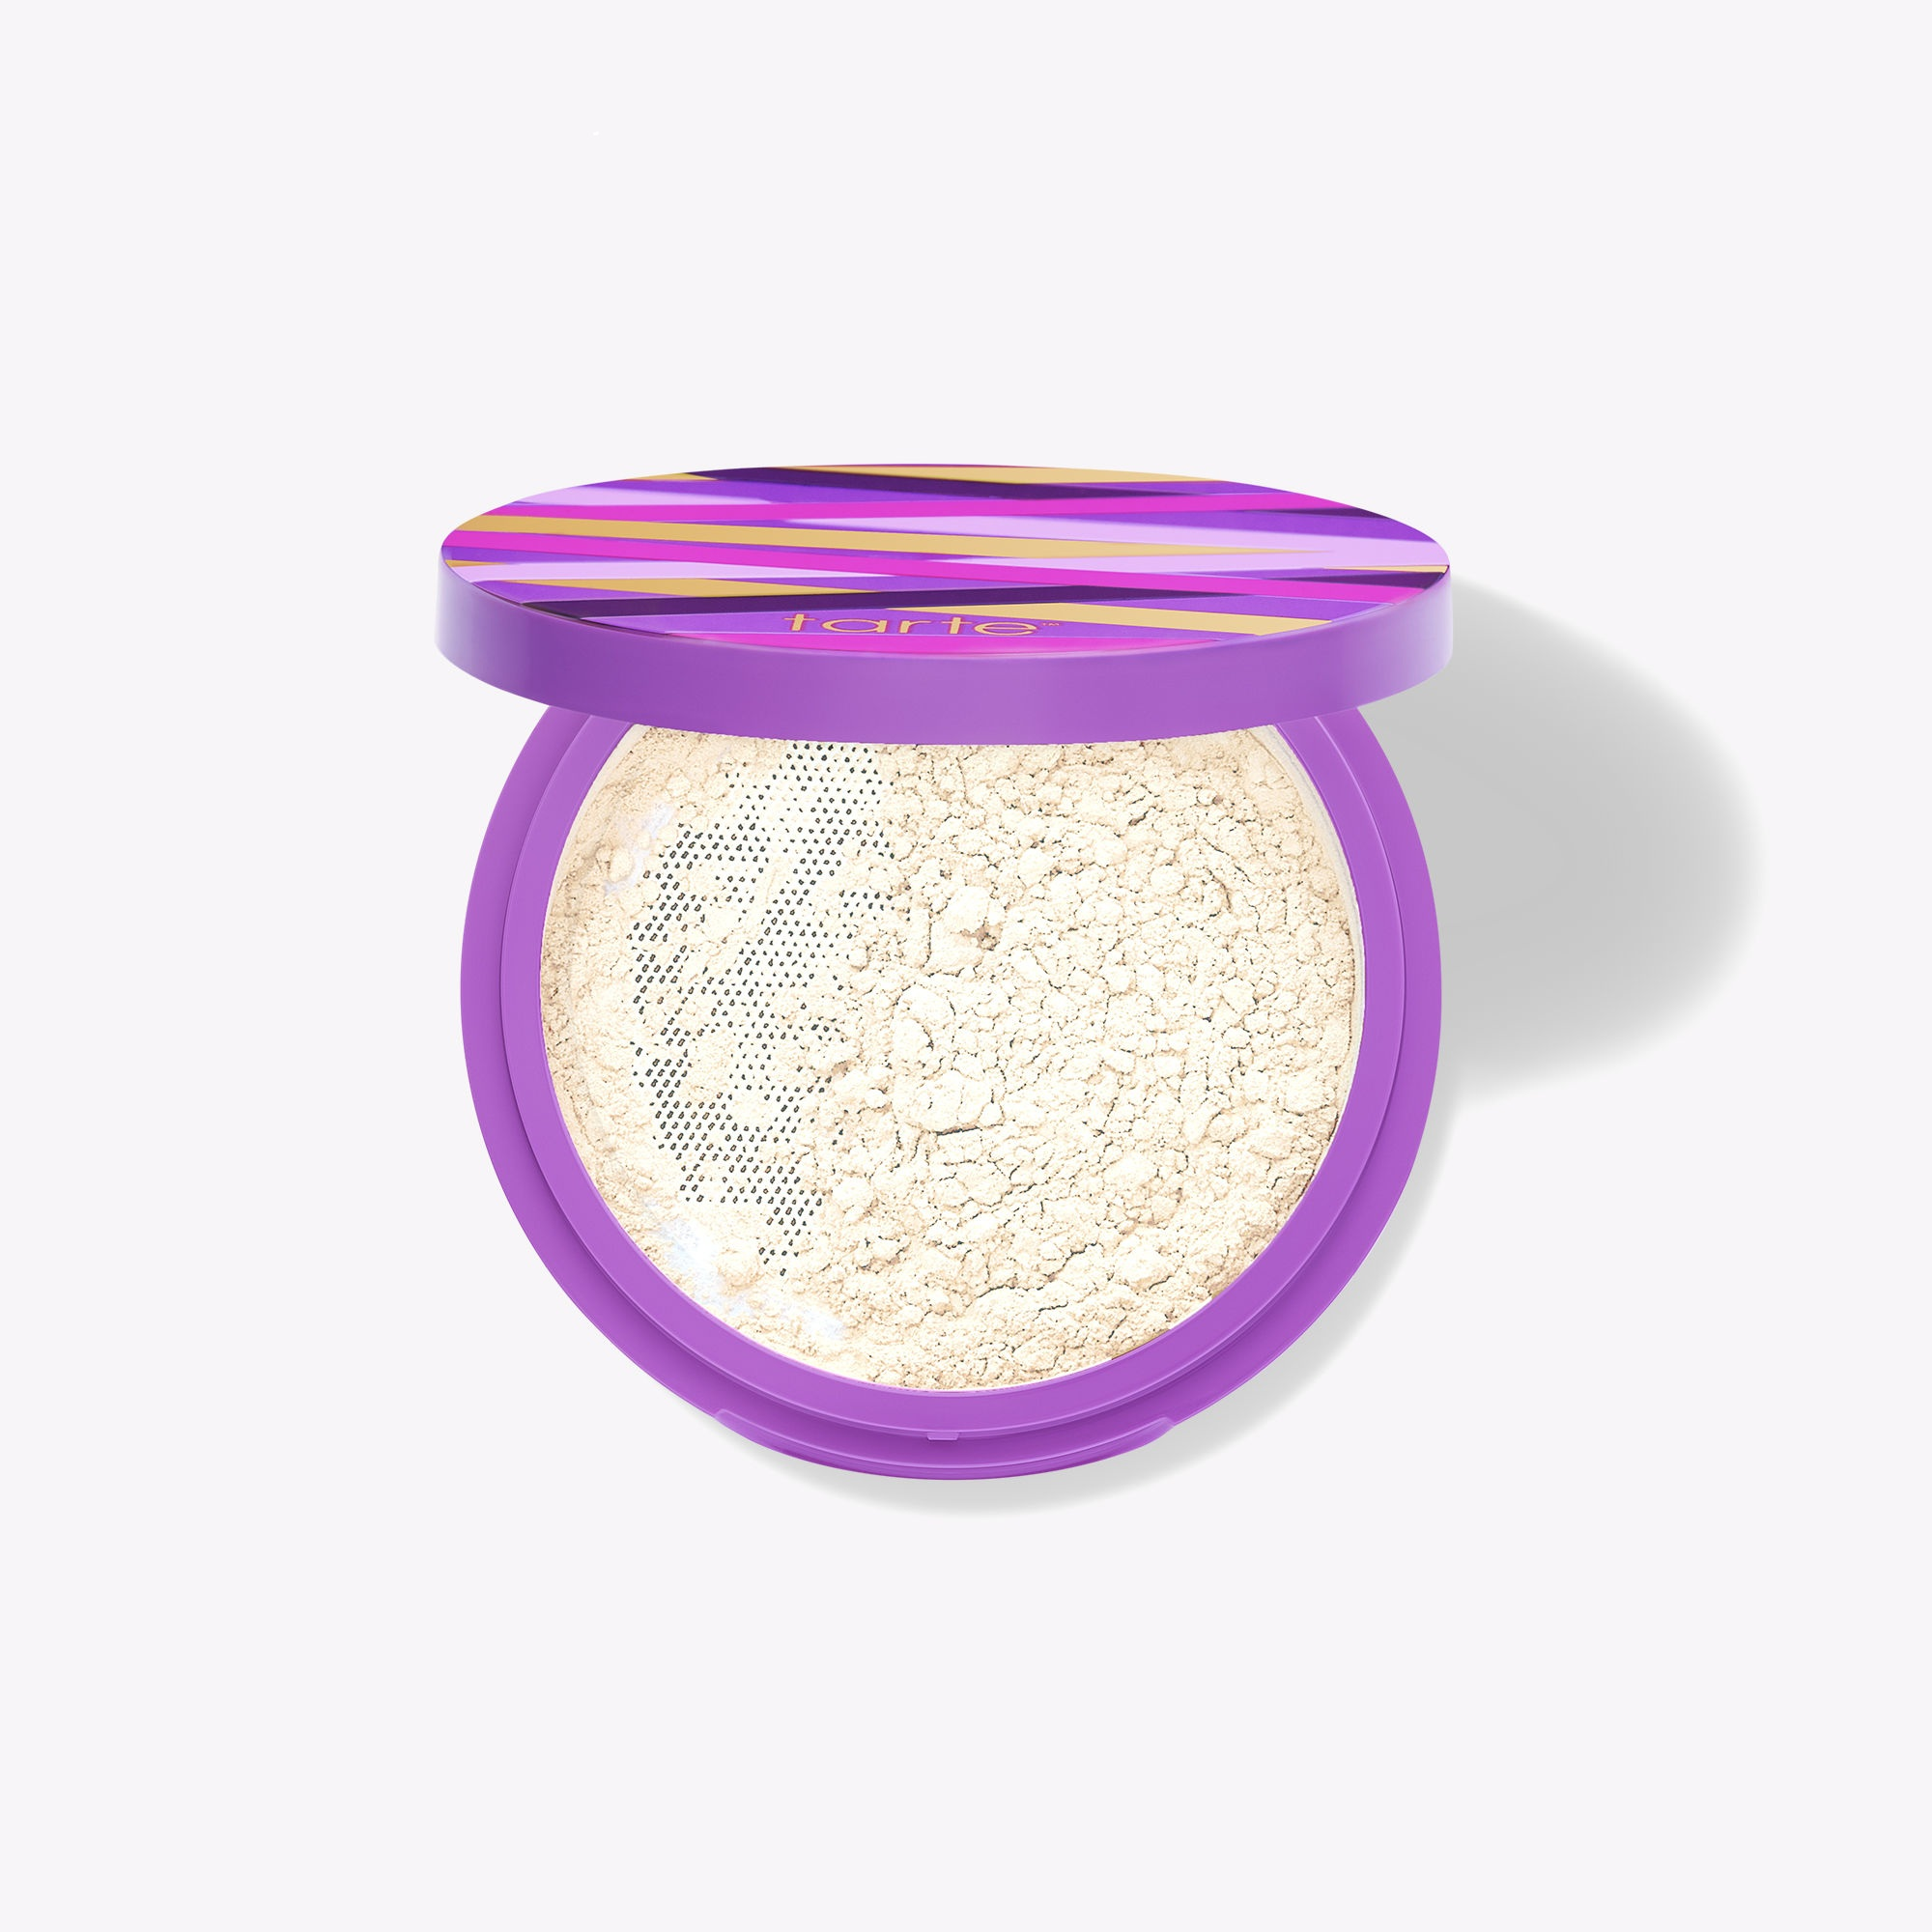 tarte™ shape tape setting powder